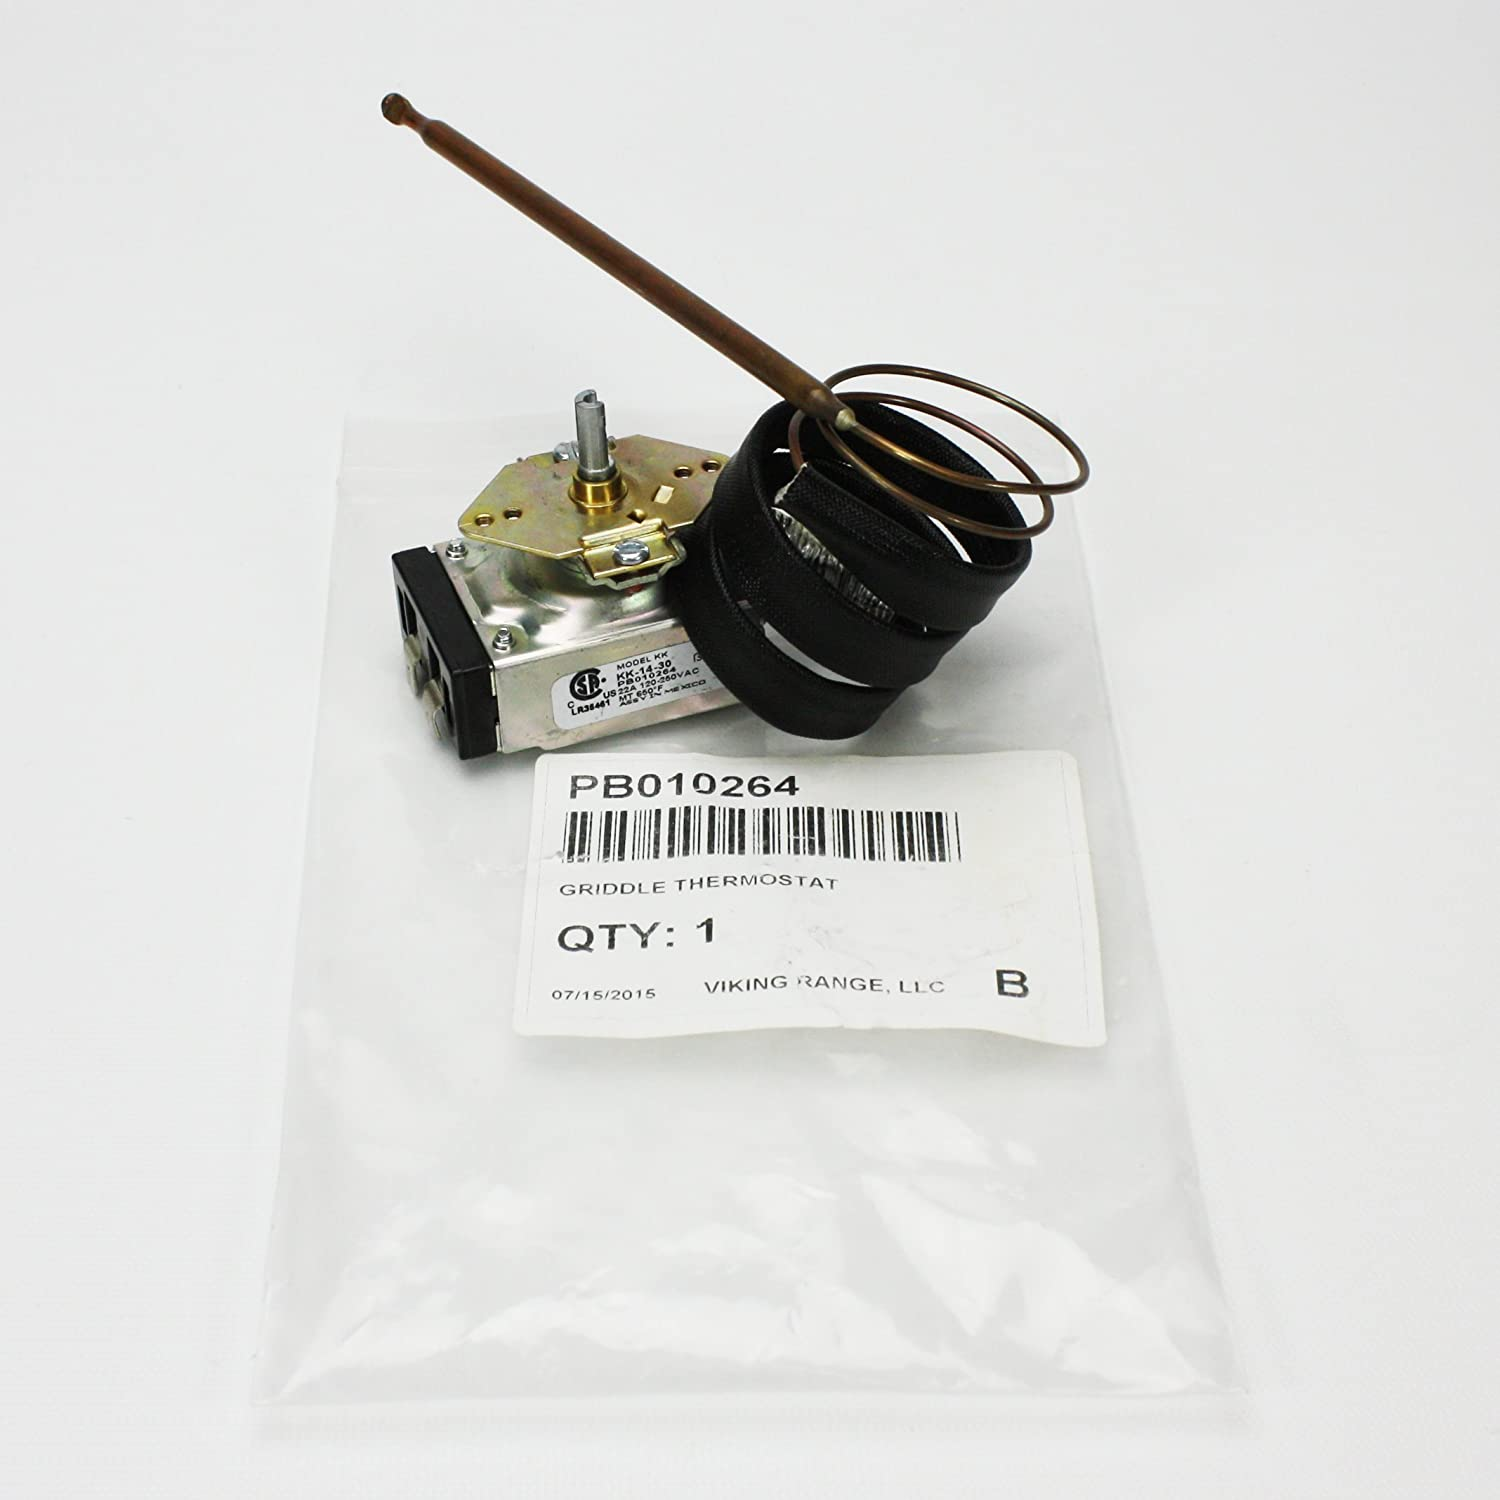 PB010264 Griddle or Left Oven Thermostat